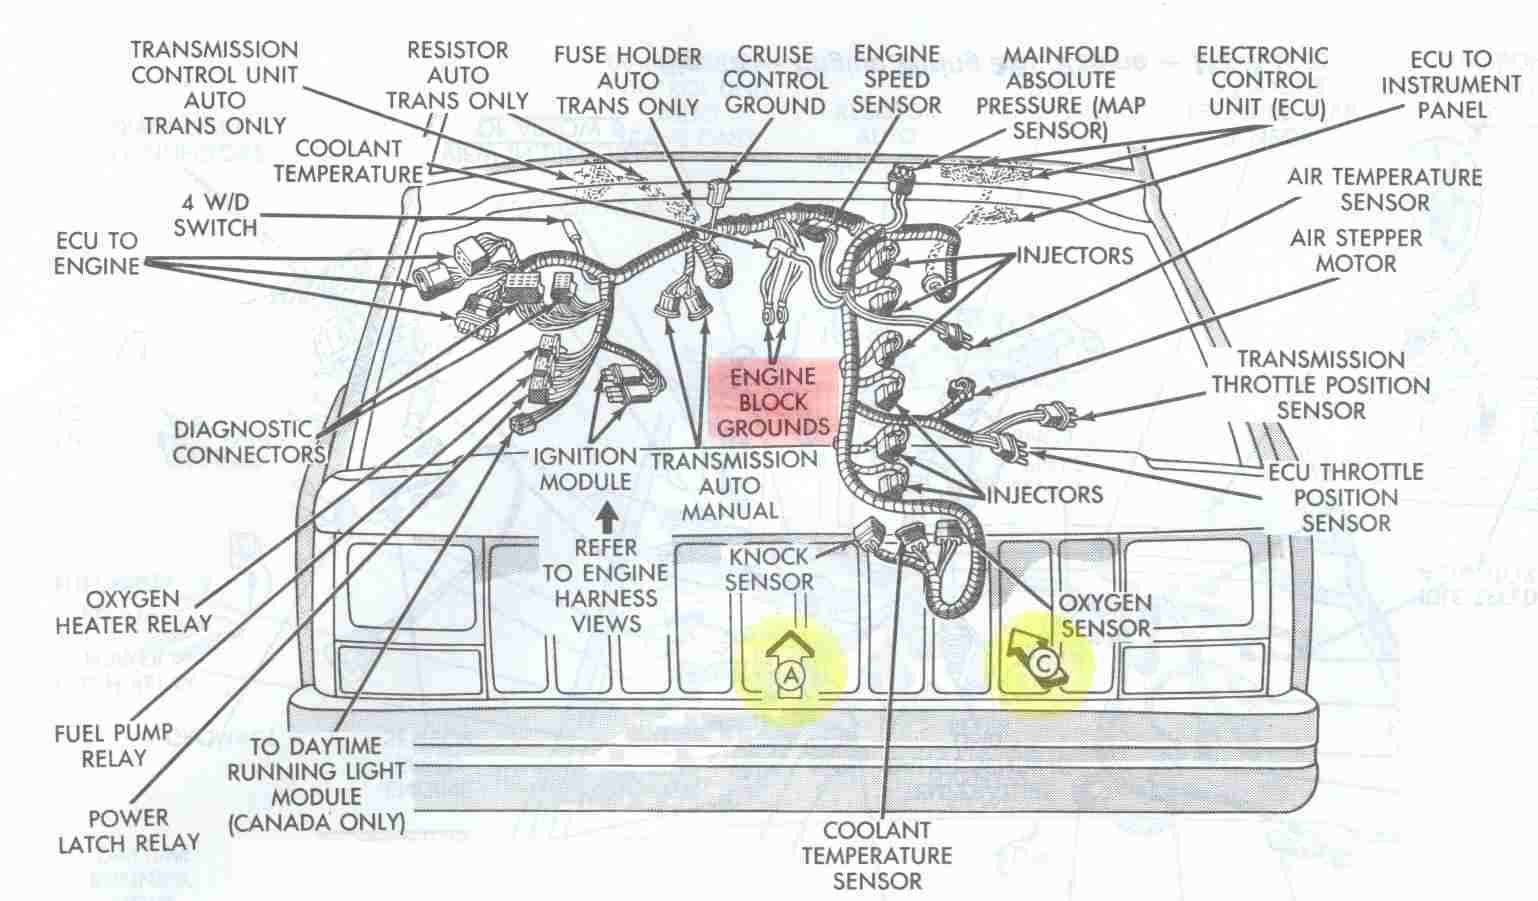 ab0134a7d9e021431187af597eb4aeca engine bay schematic showing major electrical ground points for Jeep Cherokee Stereo Wiring at gsmx.co